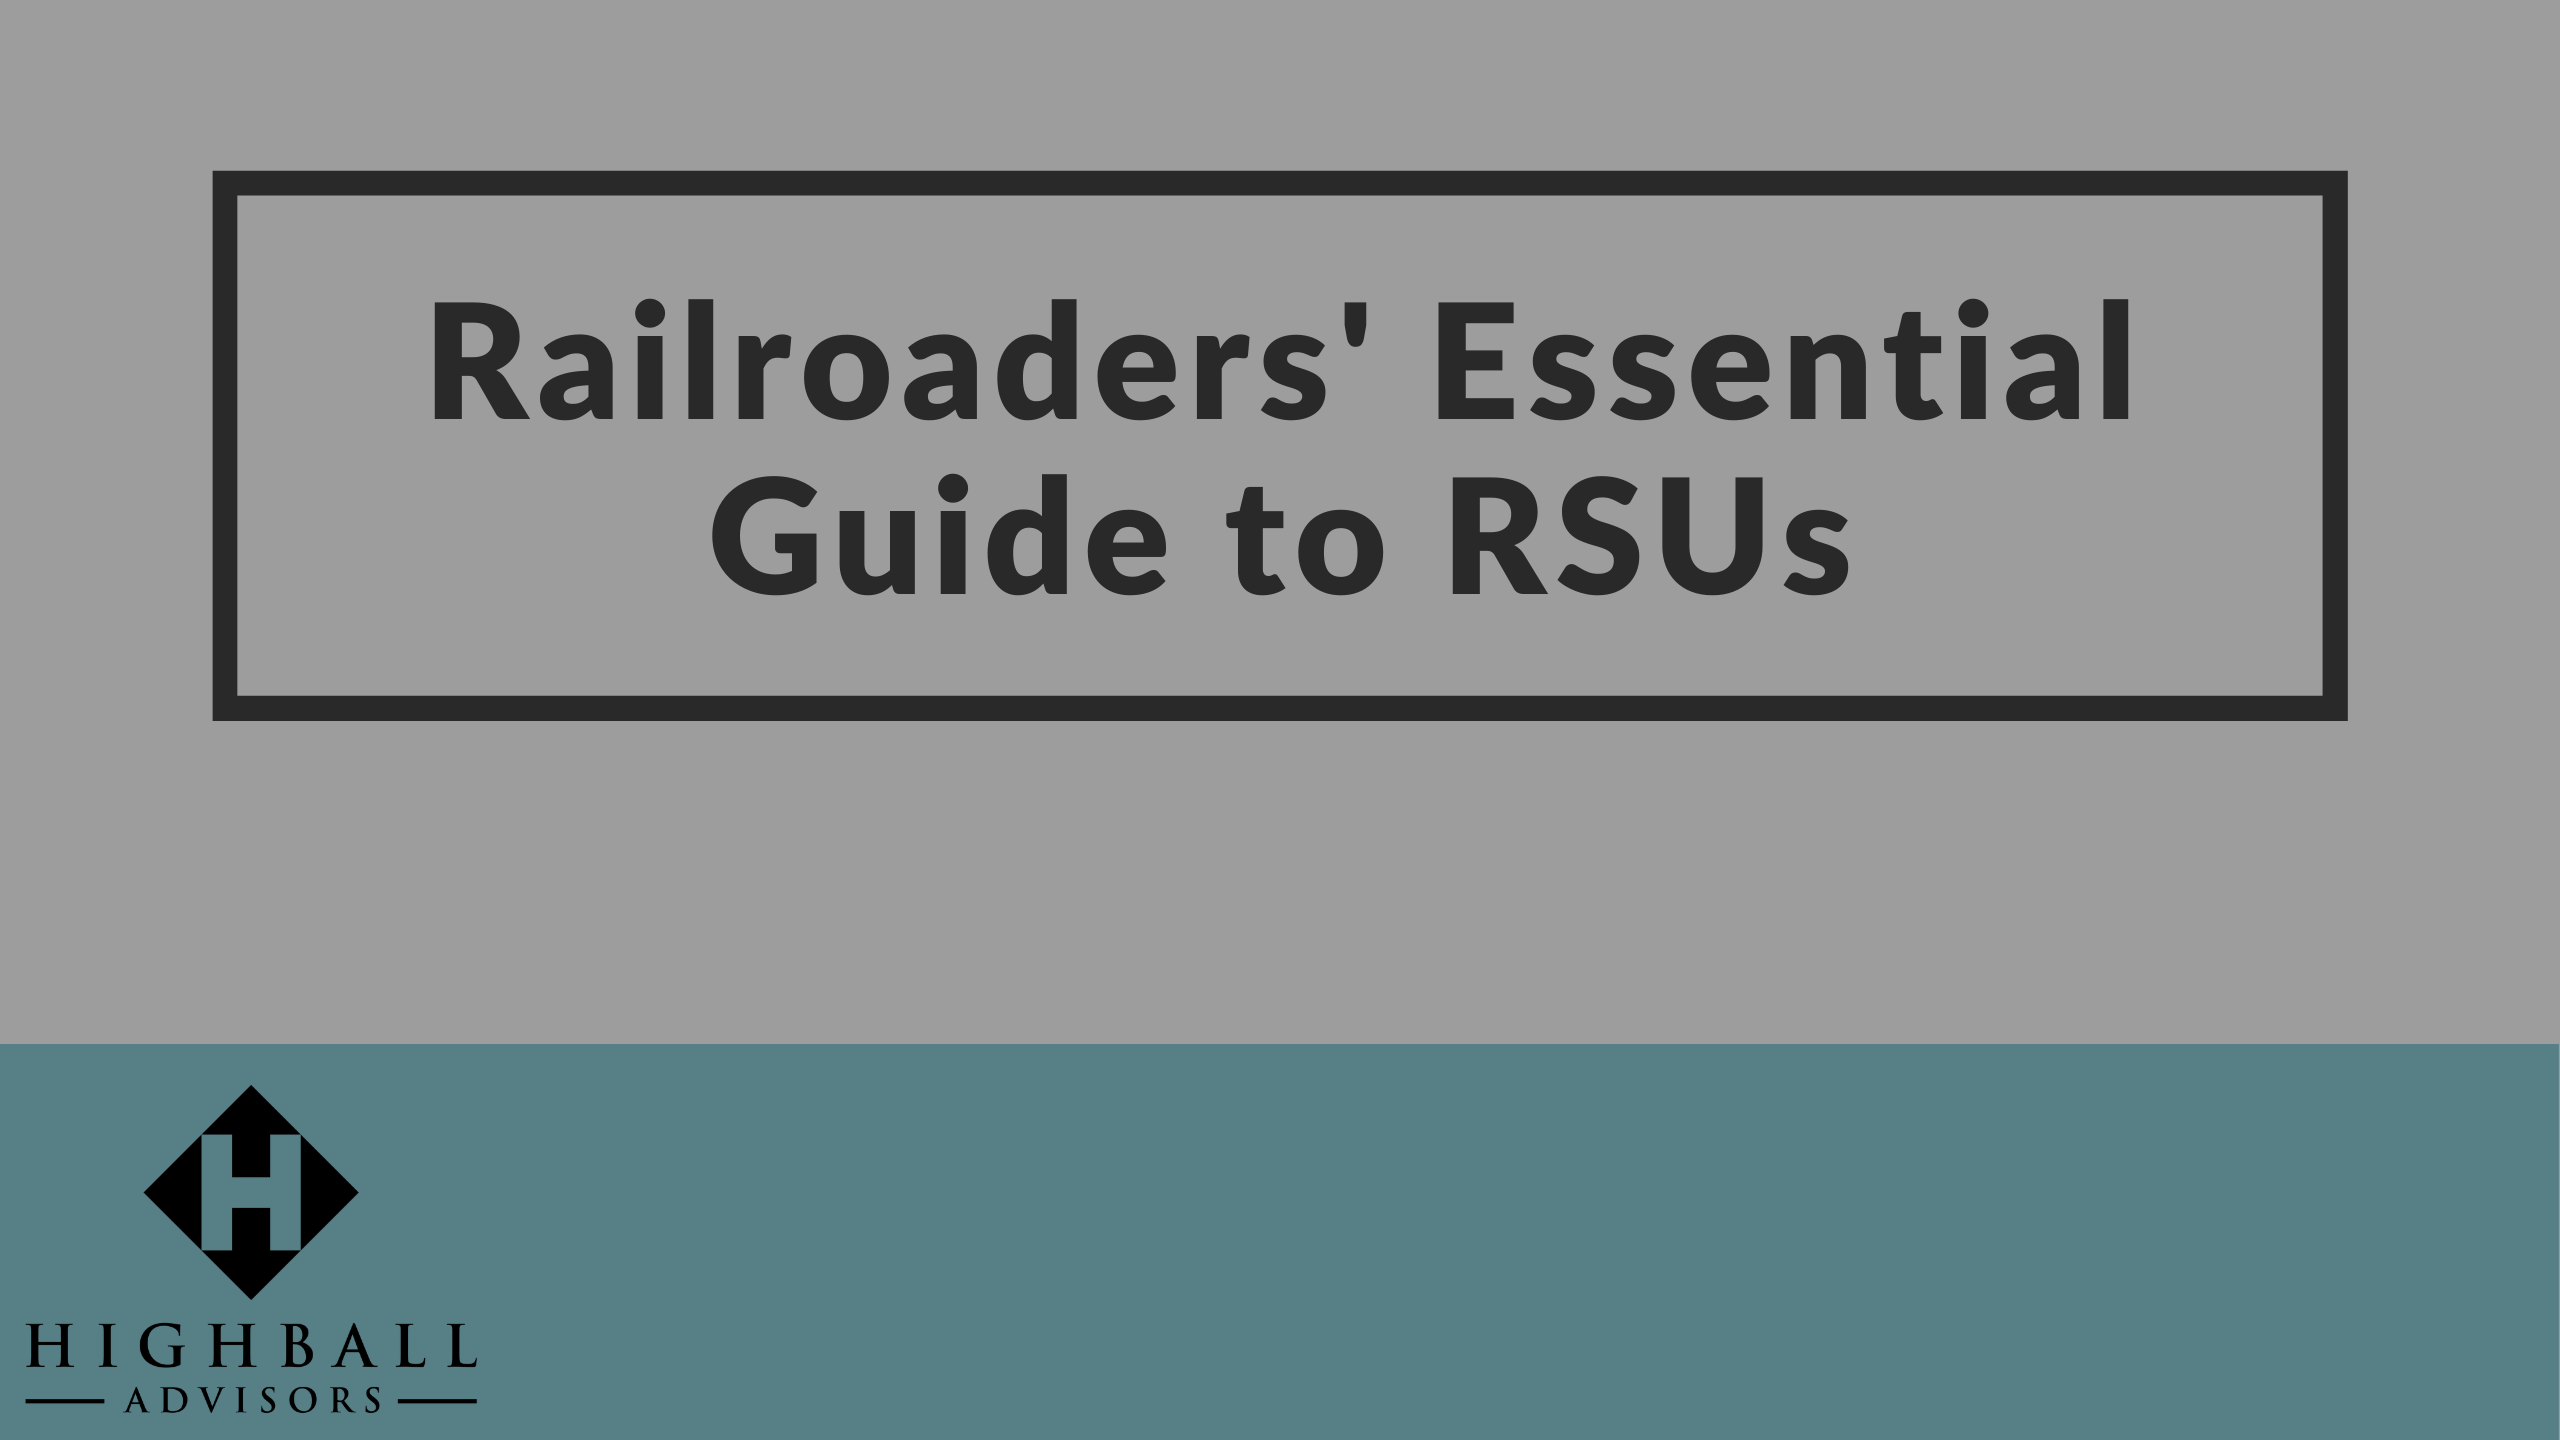 VIDEO: Railroaders' Essential Guide to RSUs Thumbnail